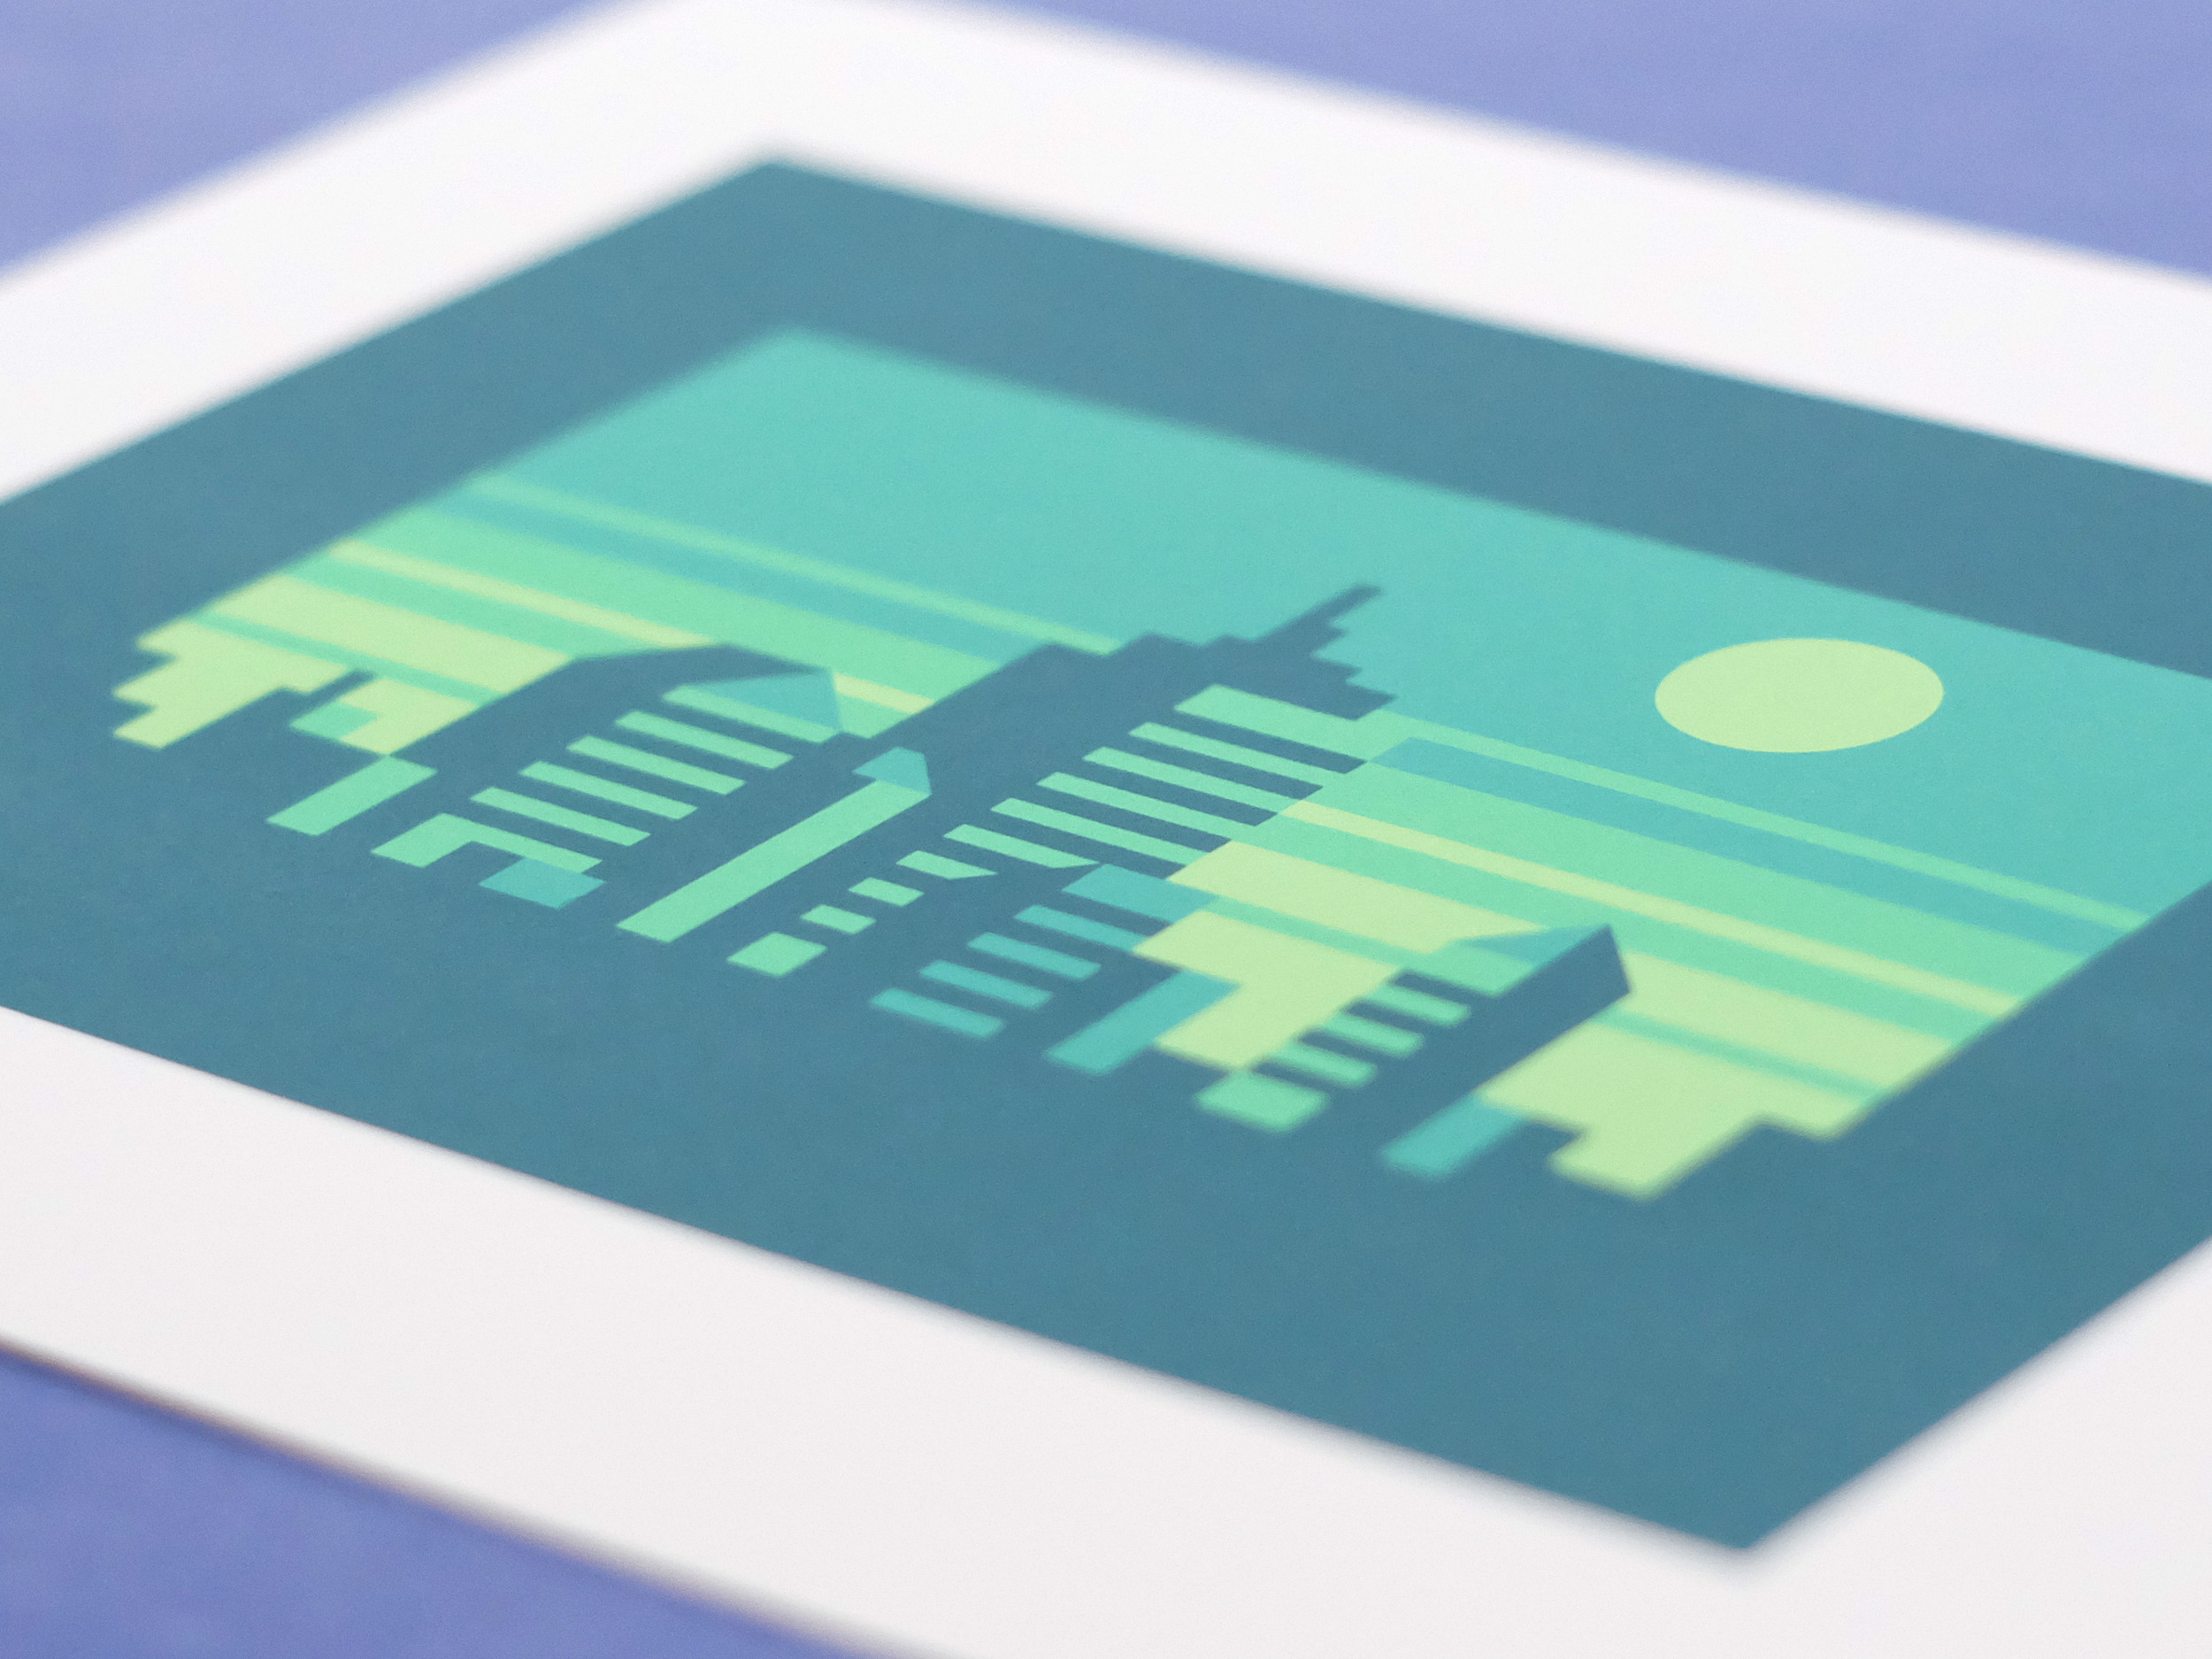 Abstract Cities: Emerald design photo by Matt Anderson and Canopy Design. Limited color, geometric city skyline.